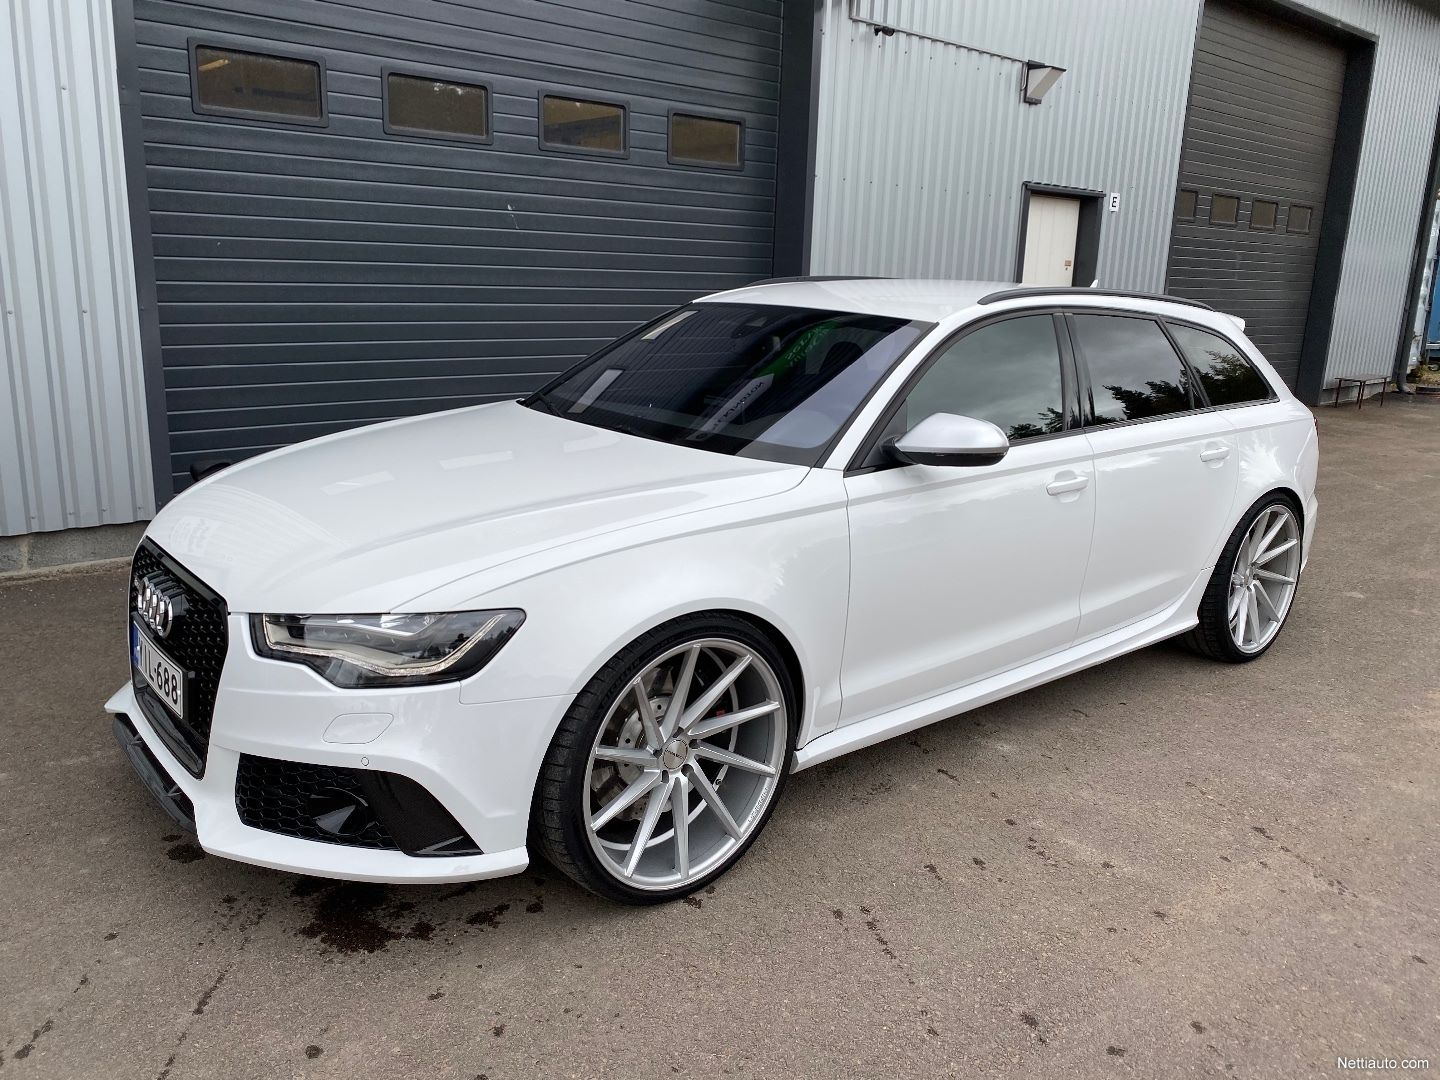 Audi-RS6-Avant-Kimi-Raikkonen-for-sale-5